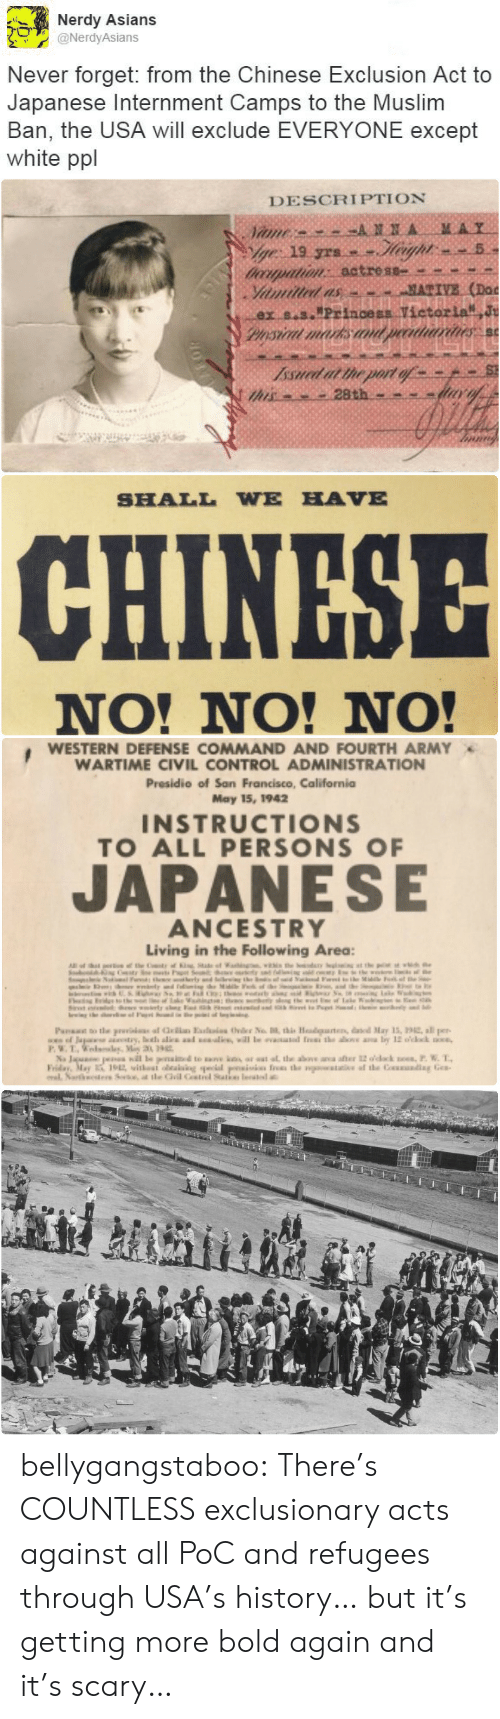 """Noes: Nerdy Asians  @NerdyAsians  Never forget: from the Chinese Exclusion Act to  Japanese Internment Camps to the Muslim  Ban, the USA will exclude EVERYONE except  white ppl   DESCRIPTION  MAY  ANNA  Vame  ge 19 yrs.  doorpation: actress  Yiamilled as  ex s.s.""""Princess Vietorla J  Pysical marks an  MATIVE (Doc  peeatriarines  Issued at the port of  this   SHALL WE HAVE  CHINESE  NO! NO! NO!   WESTERN DEFENSE COMMAND AND FOURTH ARMY  WARTIME CIVIL CONTROL ADMINISTRATION  Presidio of San Francisco, California  May 15, 1942  INSTRUCTIONS  TO ALL PERSONS OF  JAPANESE  ANCESTRY  Living in the Following Area:  Al  e eC  in  herty and S  M F e  the  www  of ale  nKe  Paa o the prui af la Eai Ovder No , this Headgaten, daed May 15, 22, all per  www.of Japase try, oth alie ad will le eaated f the as a by 12 o'cck  P.W.T.edlay, Miy 3 9  Na Jaua pea il le penaid te ak ar at at the above ana after 12 odack noes,P. W. T  Friday, May 1912 withest oeaiaing pecial psiis fres the watae af the Couading Gea  al Nartesters Se, t tle Gil Cstrel Satke leate bellygangstaboo:   There's COUNTLESS exclusionary acts against all PoC and refugees through USA's history… but it's getting more bold again and it's scary…"""